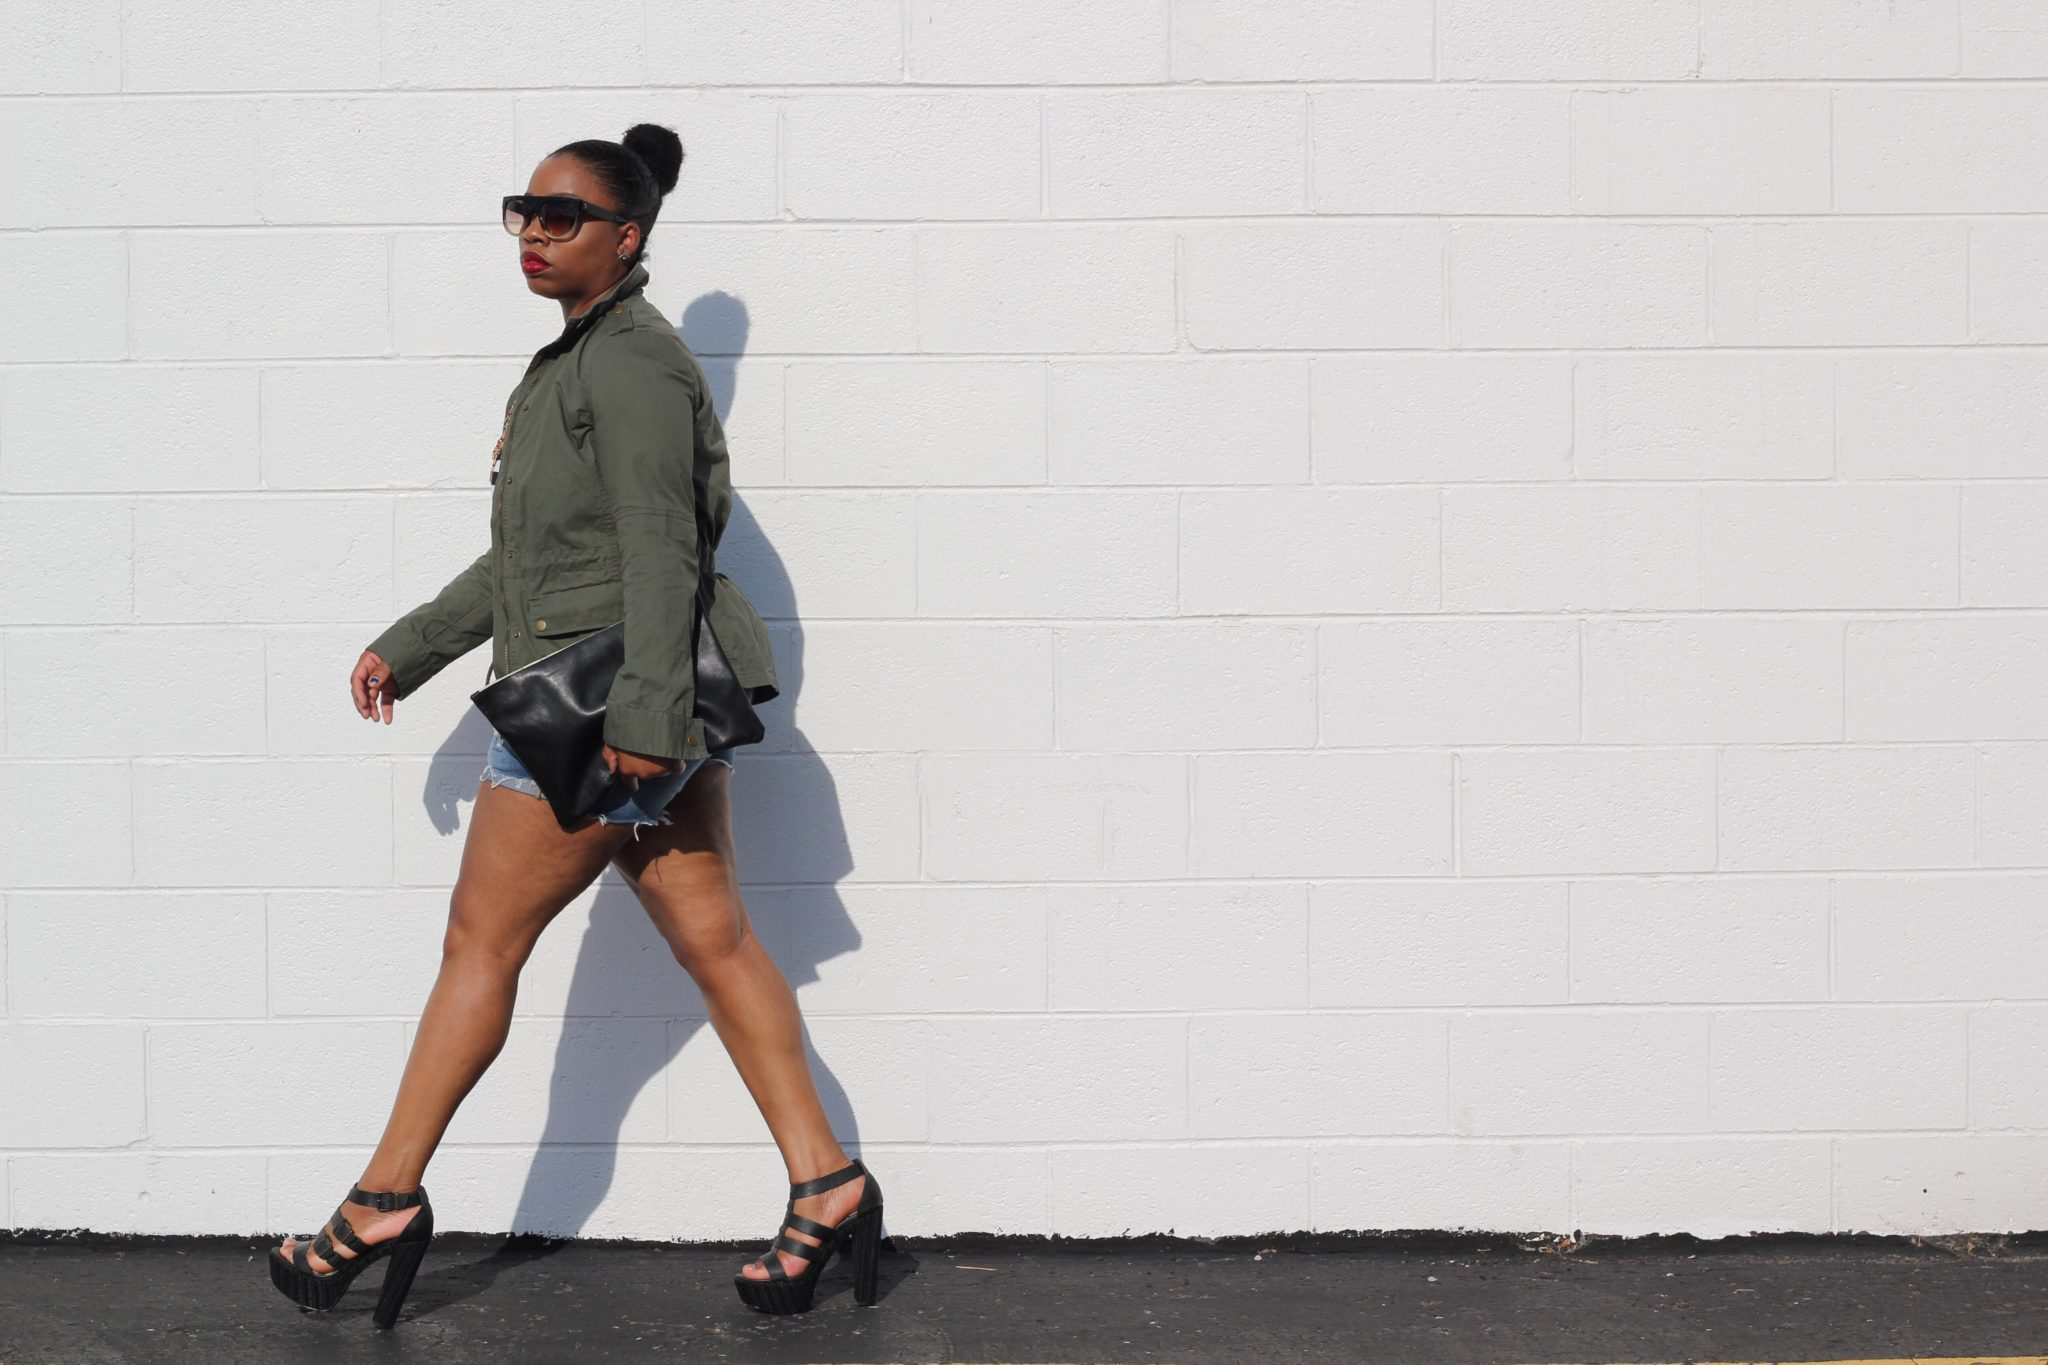 publish_snapshot-67 Hot Days & Cooler NightsAldo Shoes American Apparel eBay Fashion Fashion Nova how to Jessica Simpson Shoes OOTD shopping Style How To's: Style Inspiration Stylewatch Styling Target Target Style Uncategorized